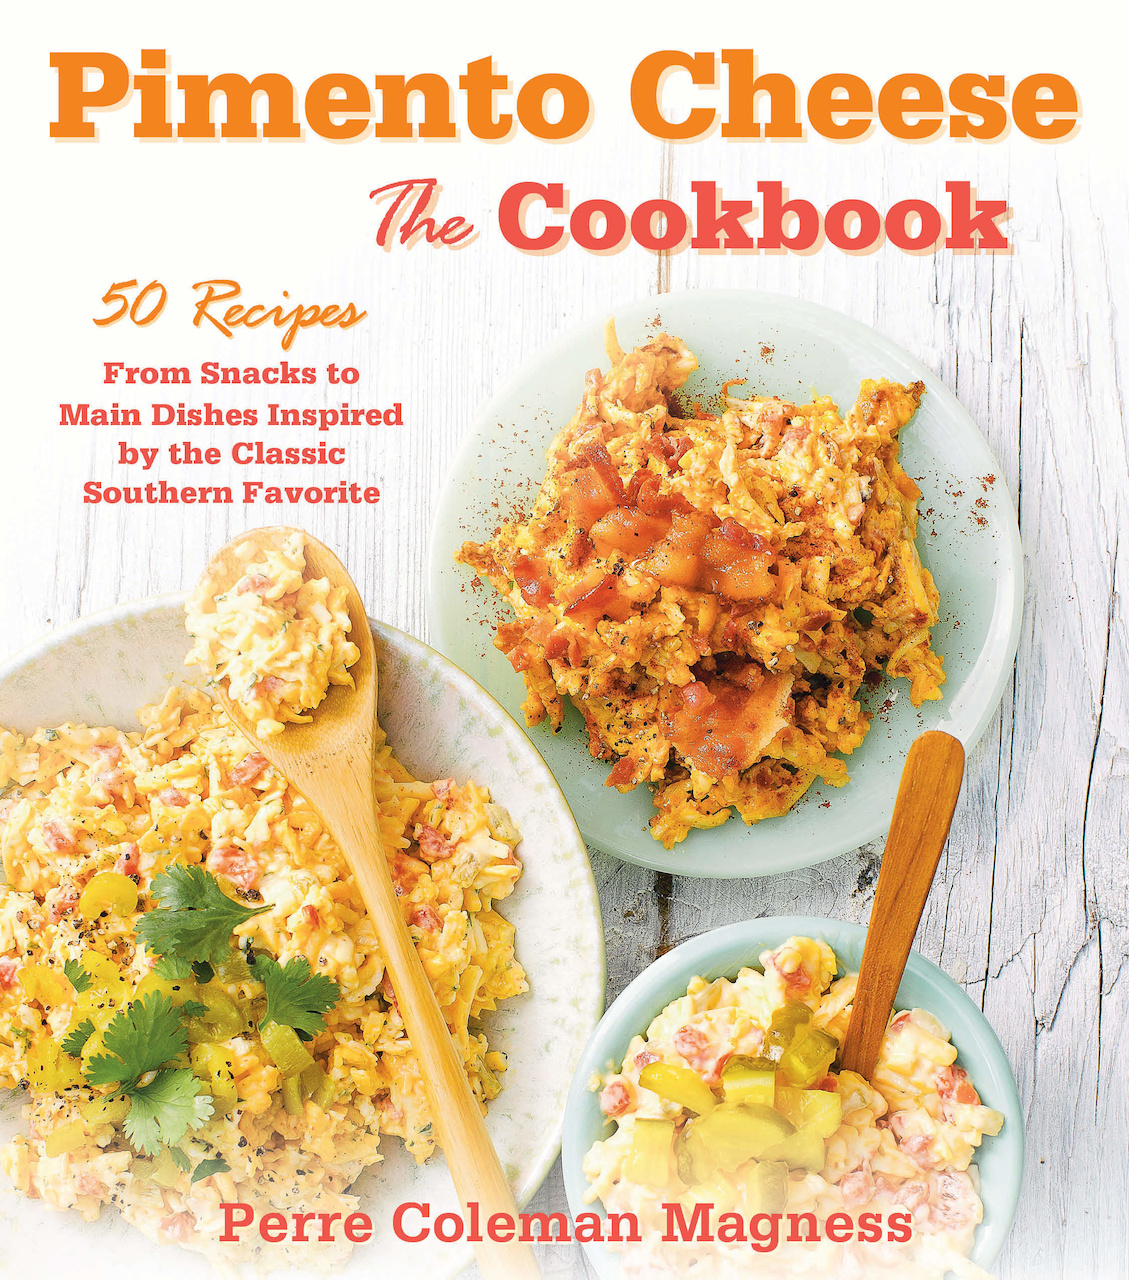 Pimento Cheese Cover.jpg